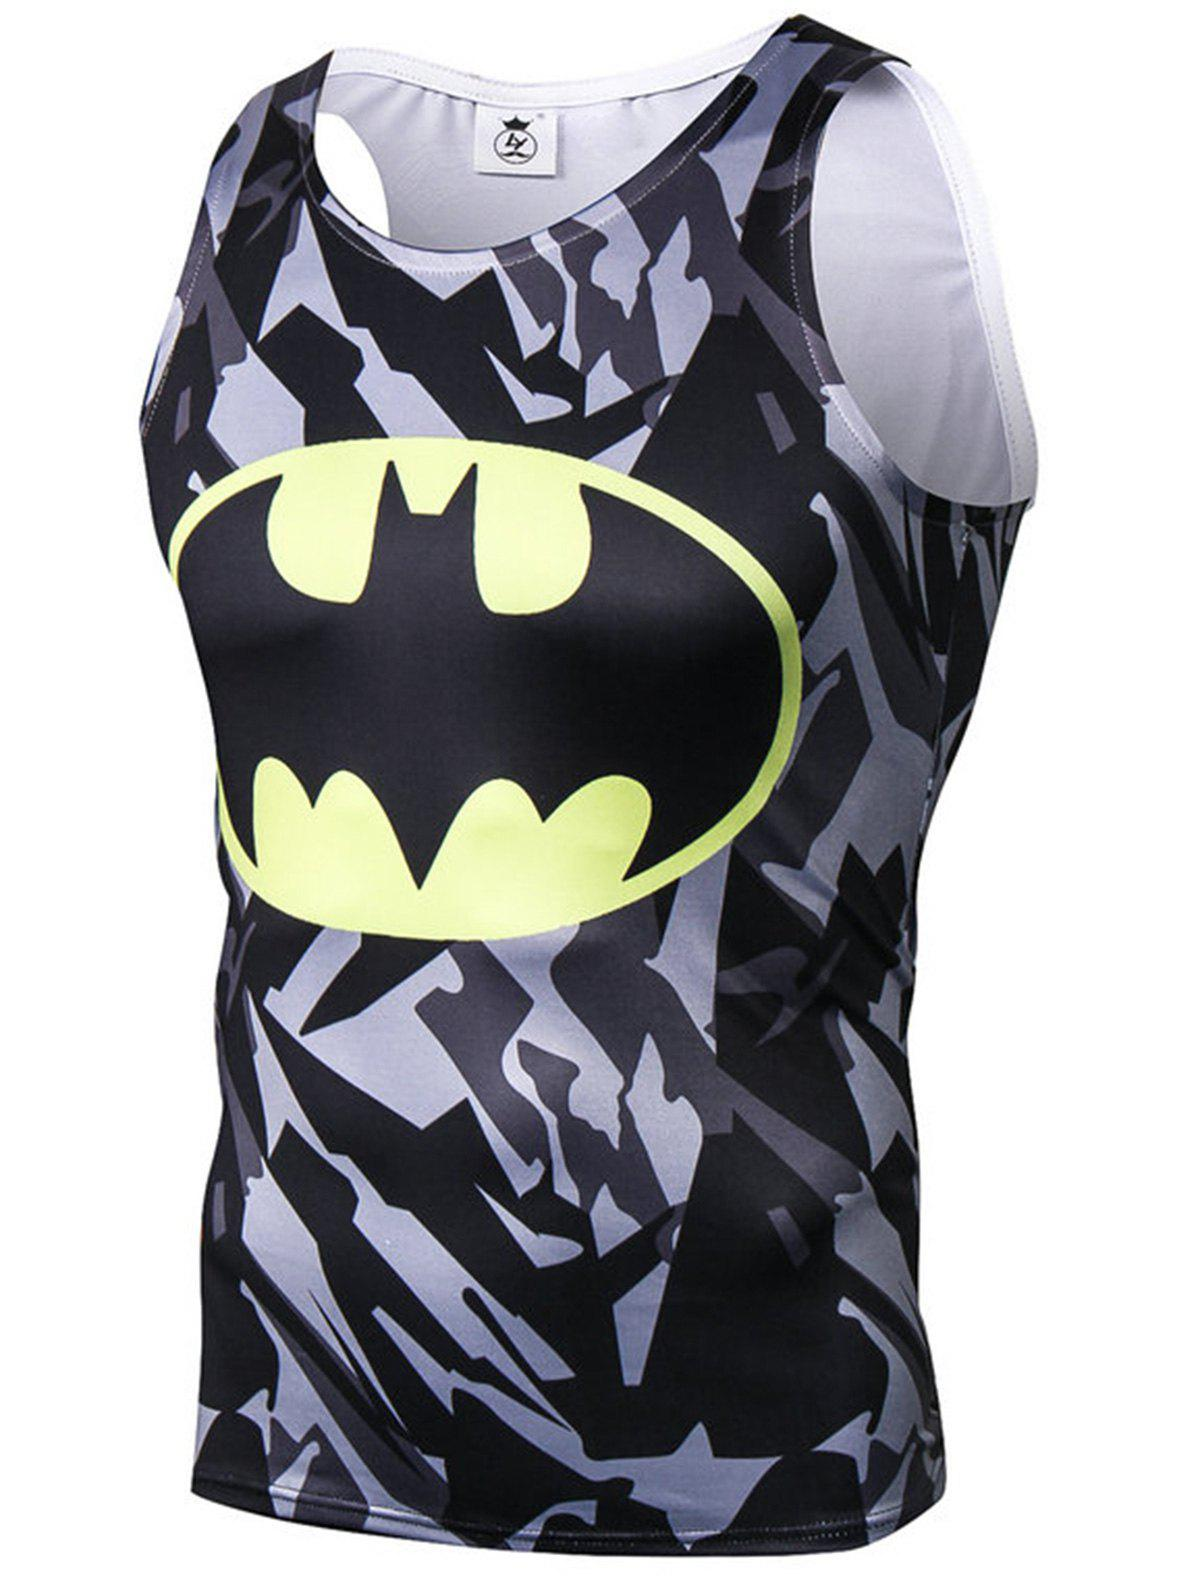 New Camouflage Bat Print Tank Top